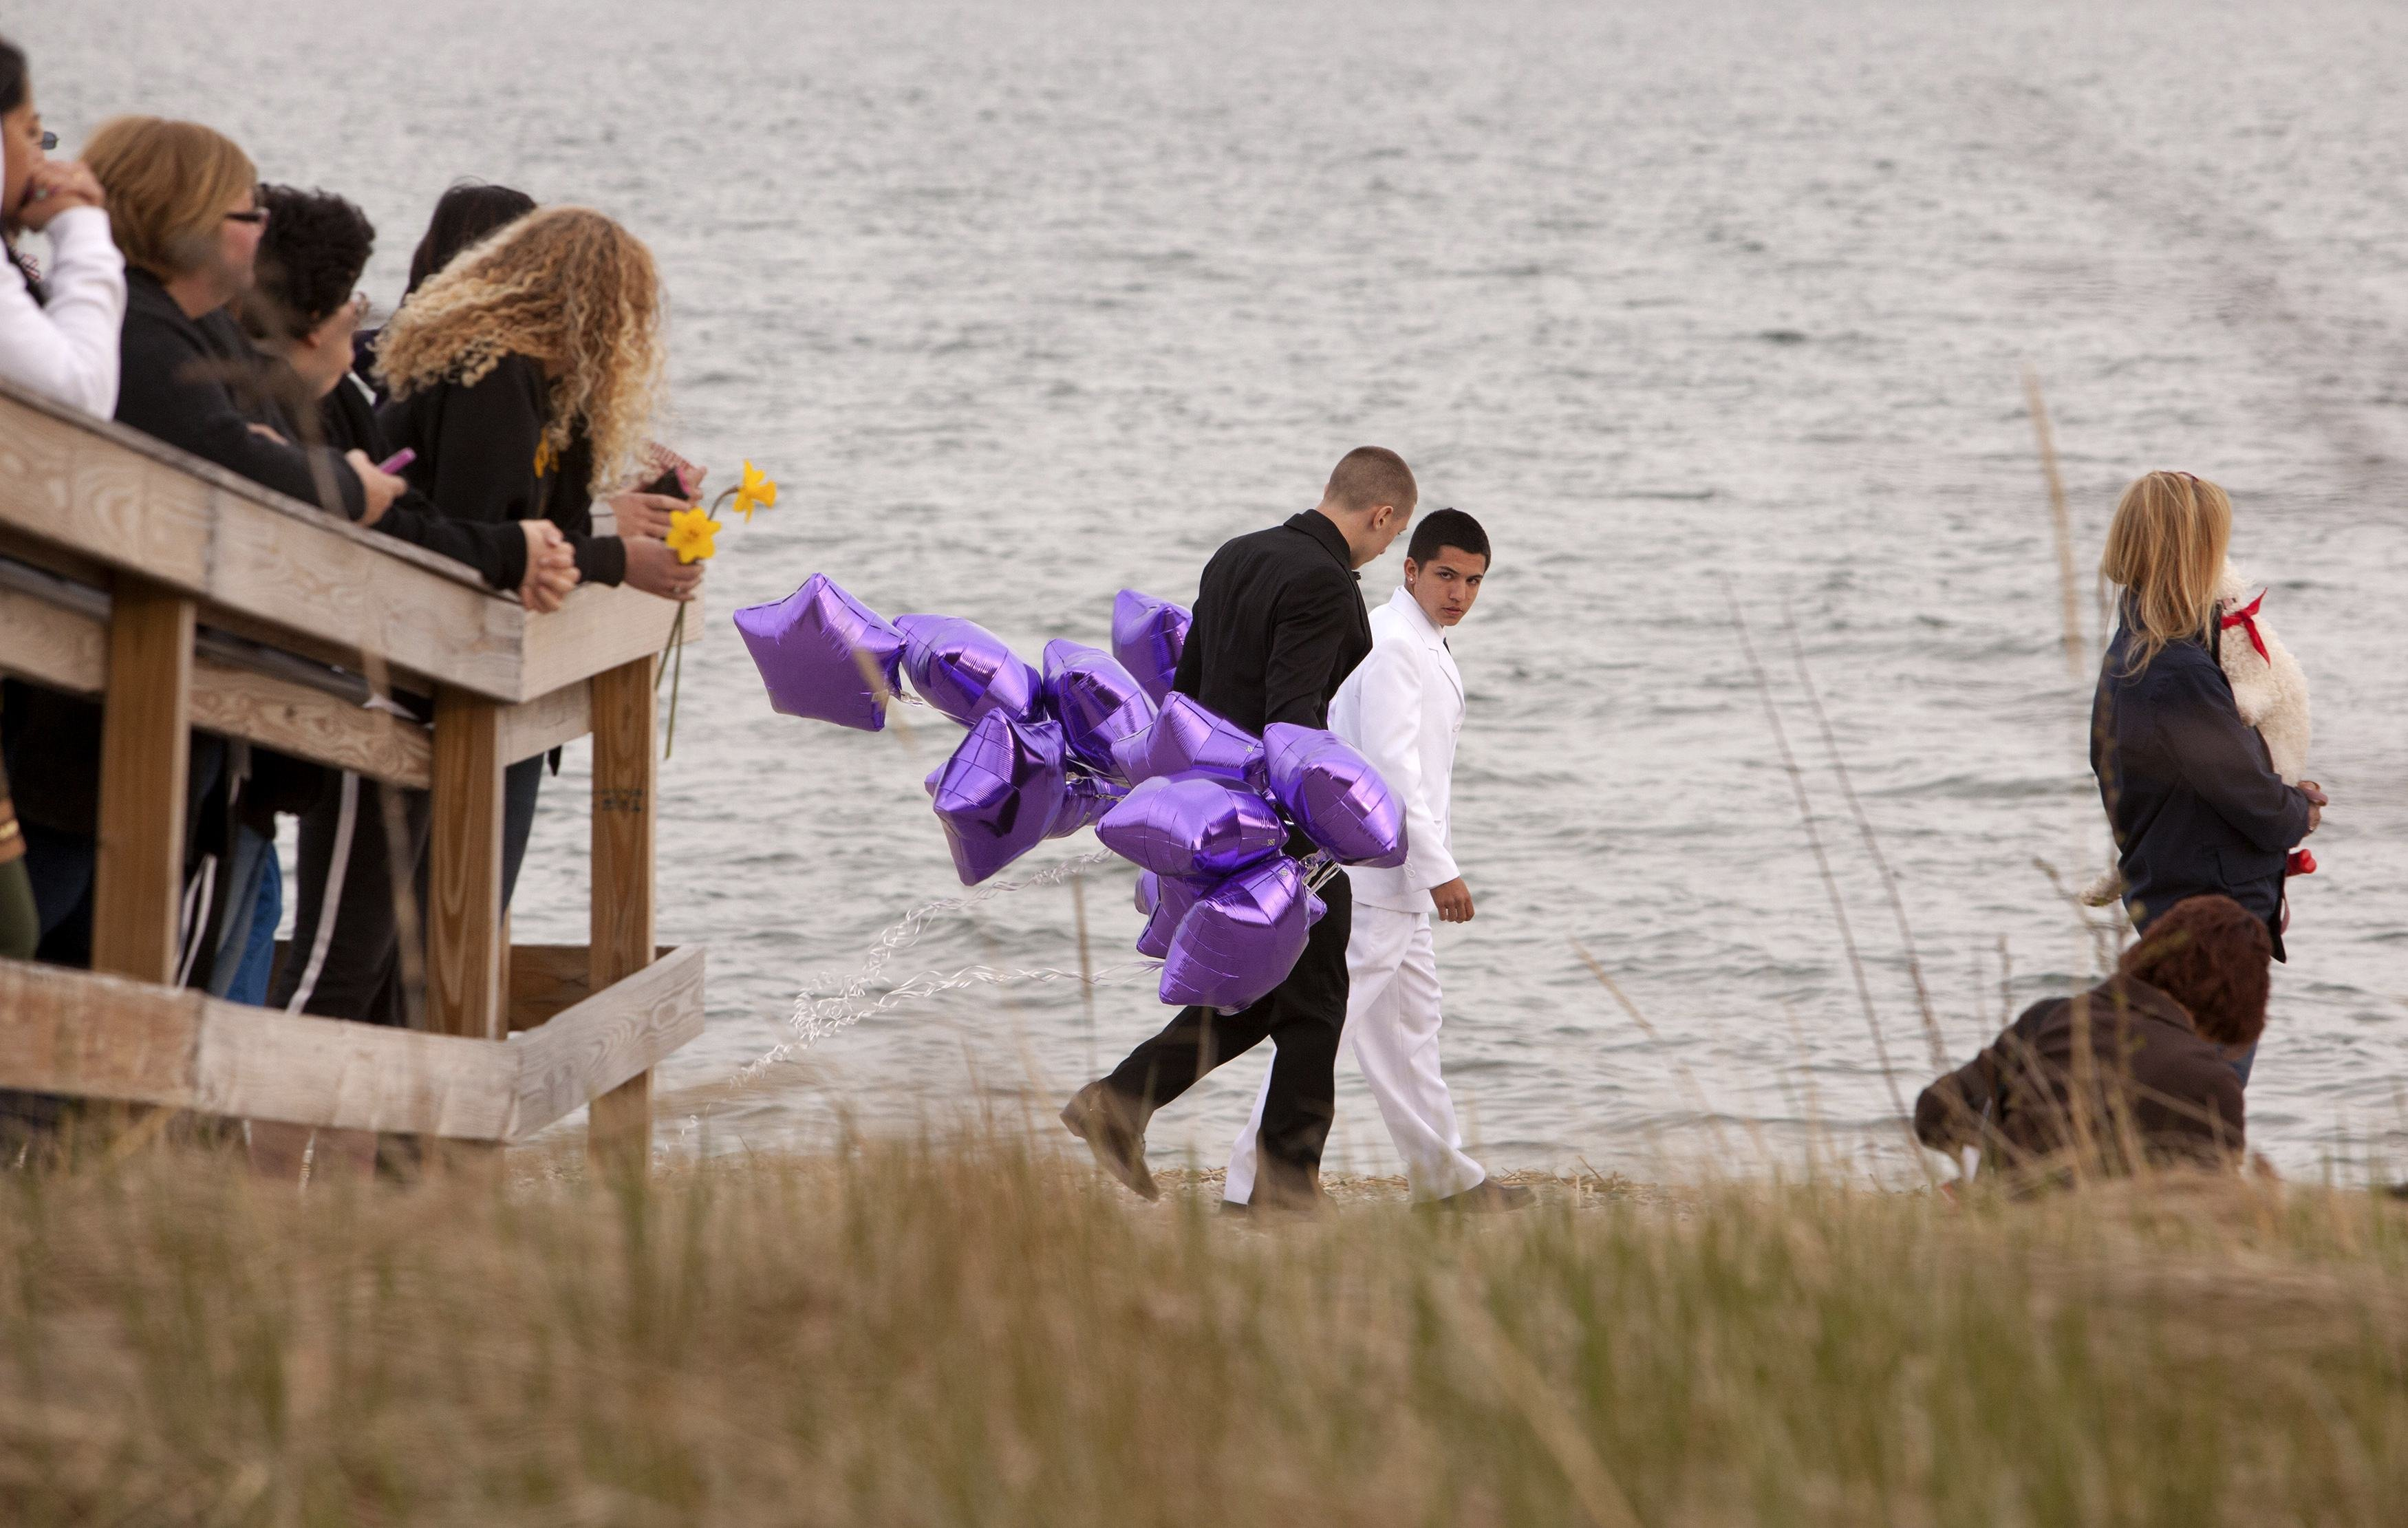 Students arrive at the beach for a vigil in honor of slain student Maren Sanchez wearing their prom clothes carrying balloons in Milford, Conn. April 25, 2014.